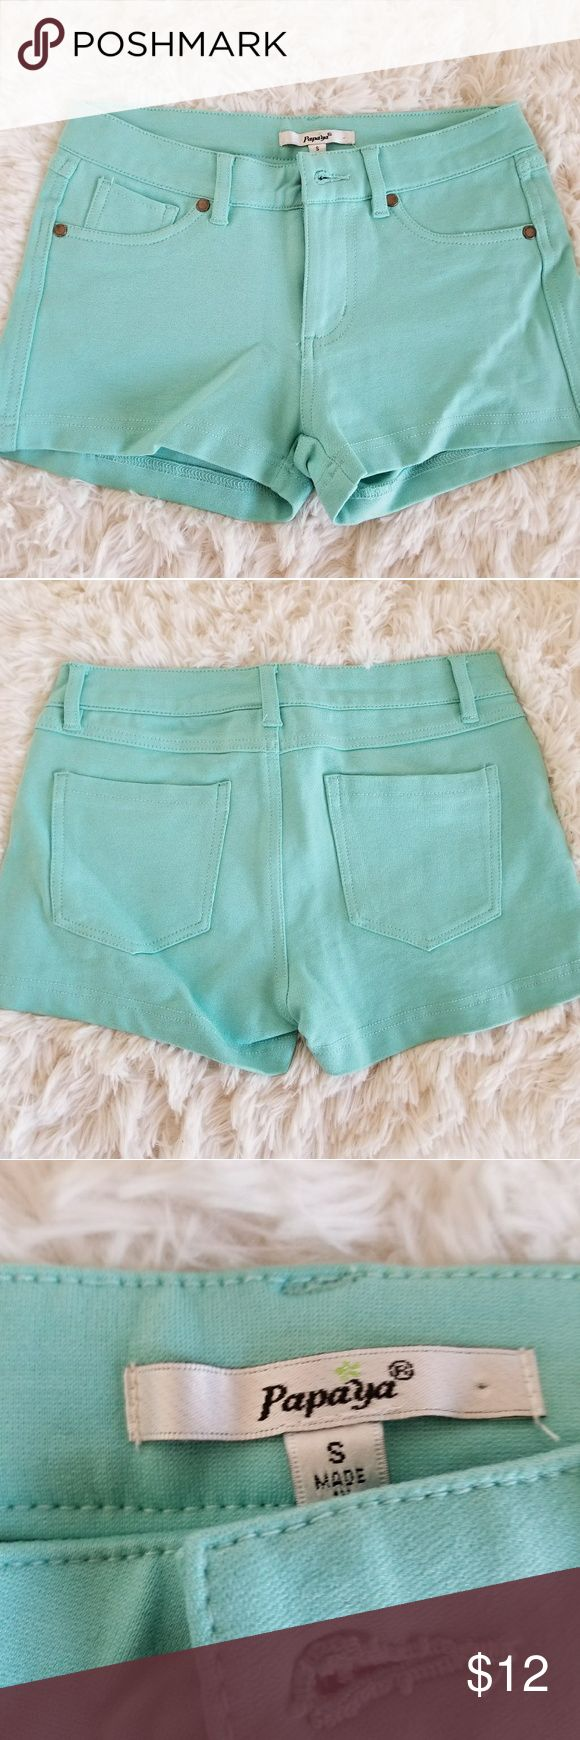 Turquoise shorts They are very comfy. I've only worn them once. They don't fit me anymore. Basically new. Papaya Shorts